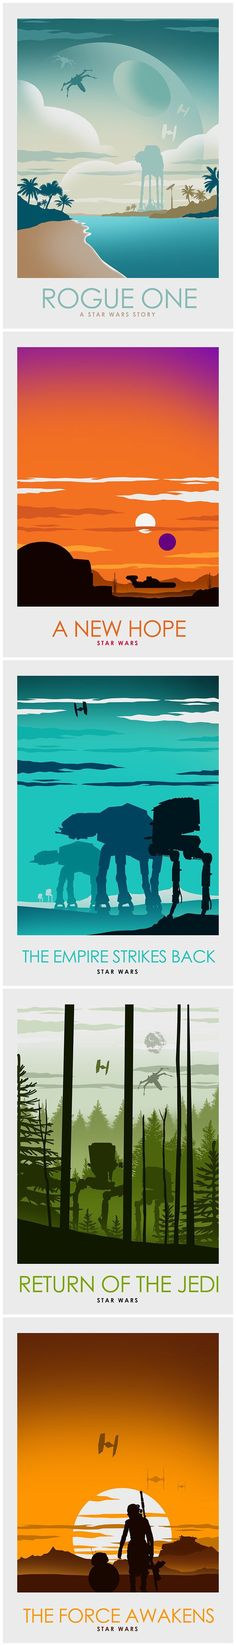 Star Wars Minimalist Poster Series Created by Ciaran Monaghan - Star Wars Canvas - Latest and trending Star Wars Canvas. - Star Wars Minimalist Poster Series Created by Ciaran Monaghan